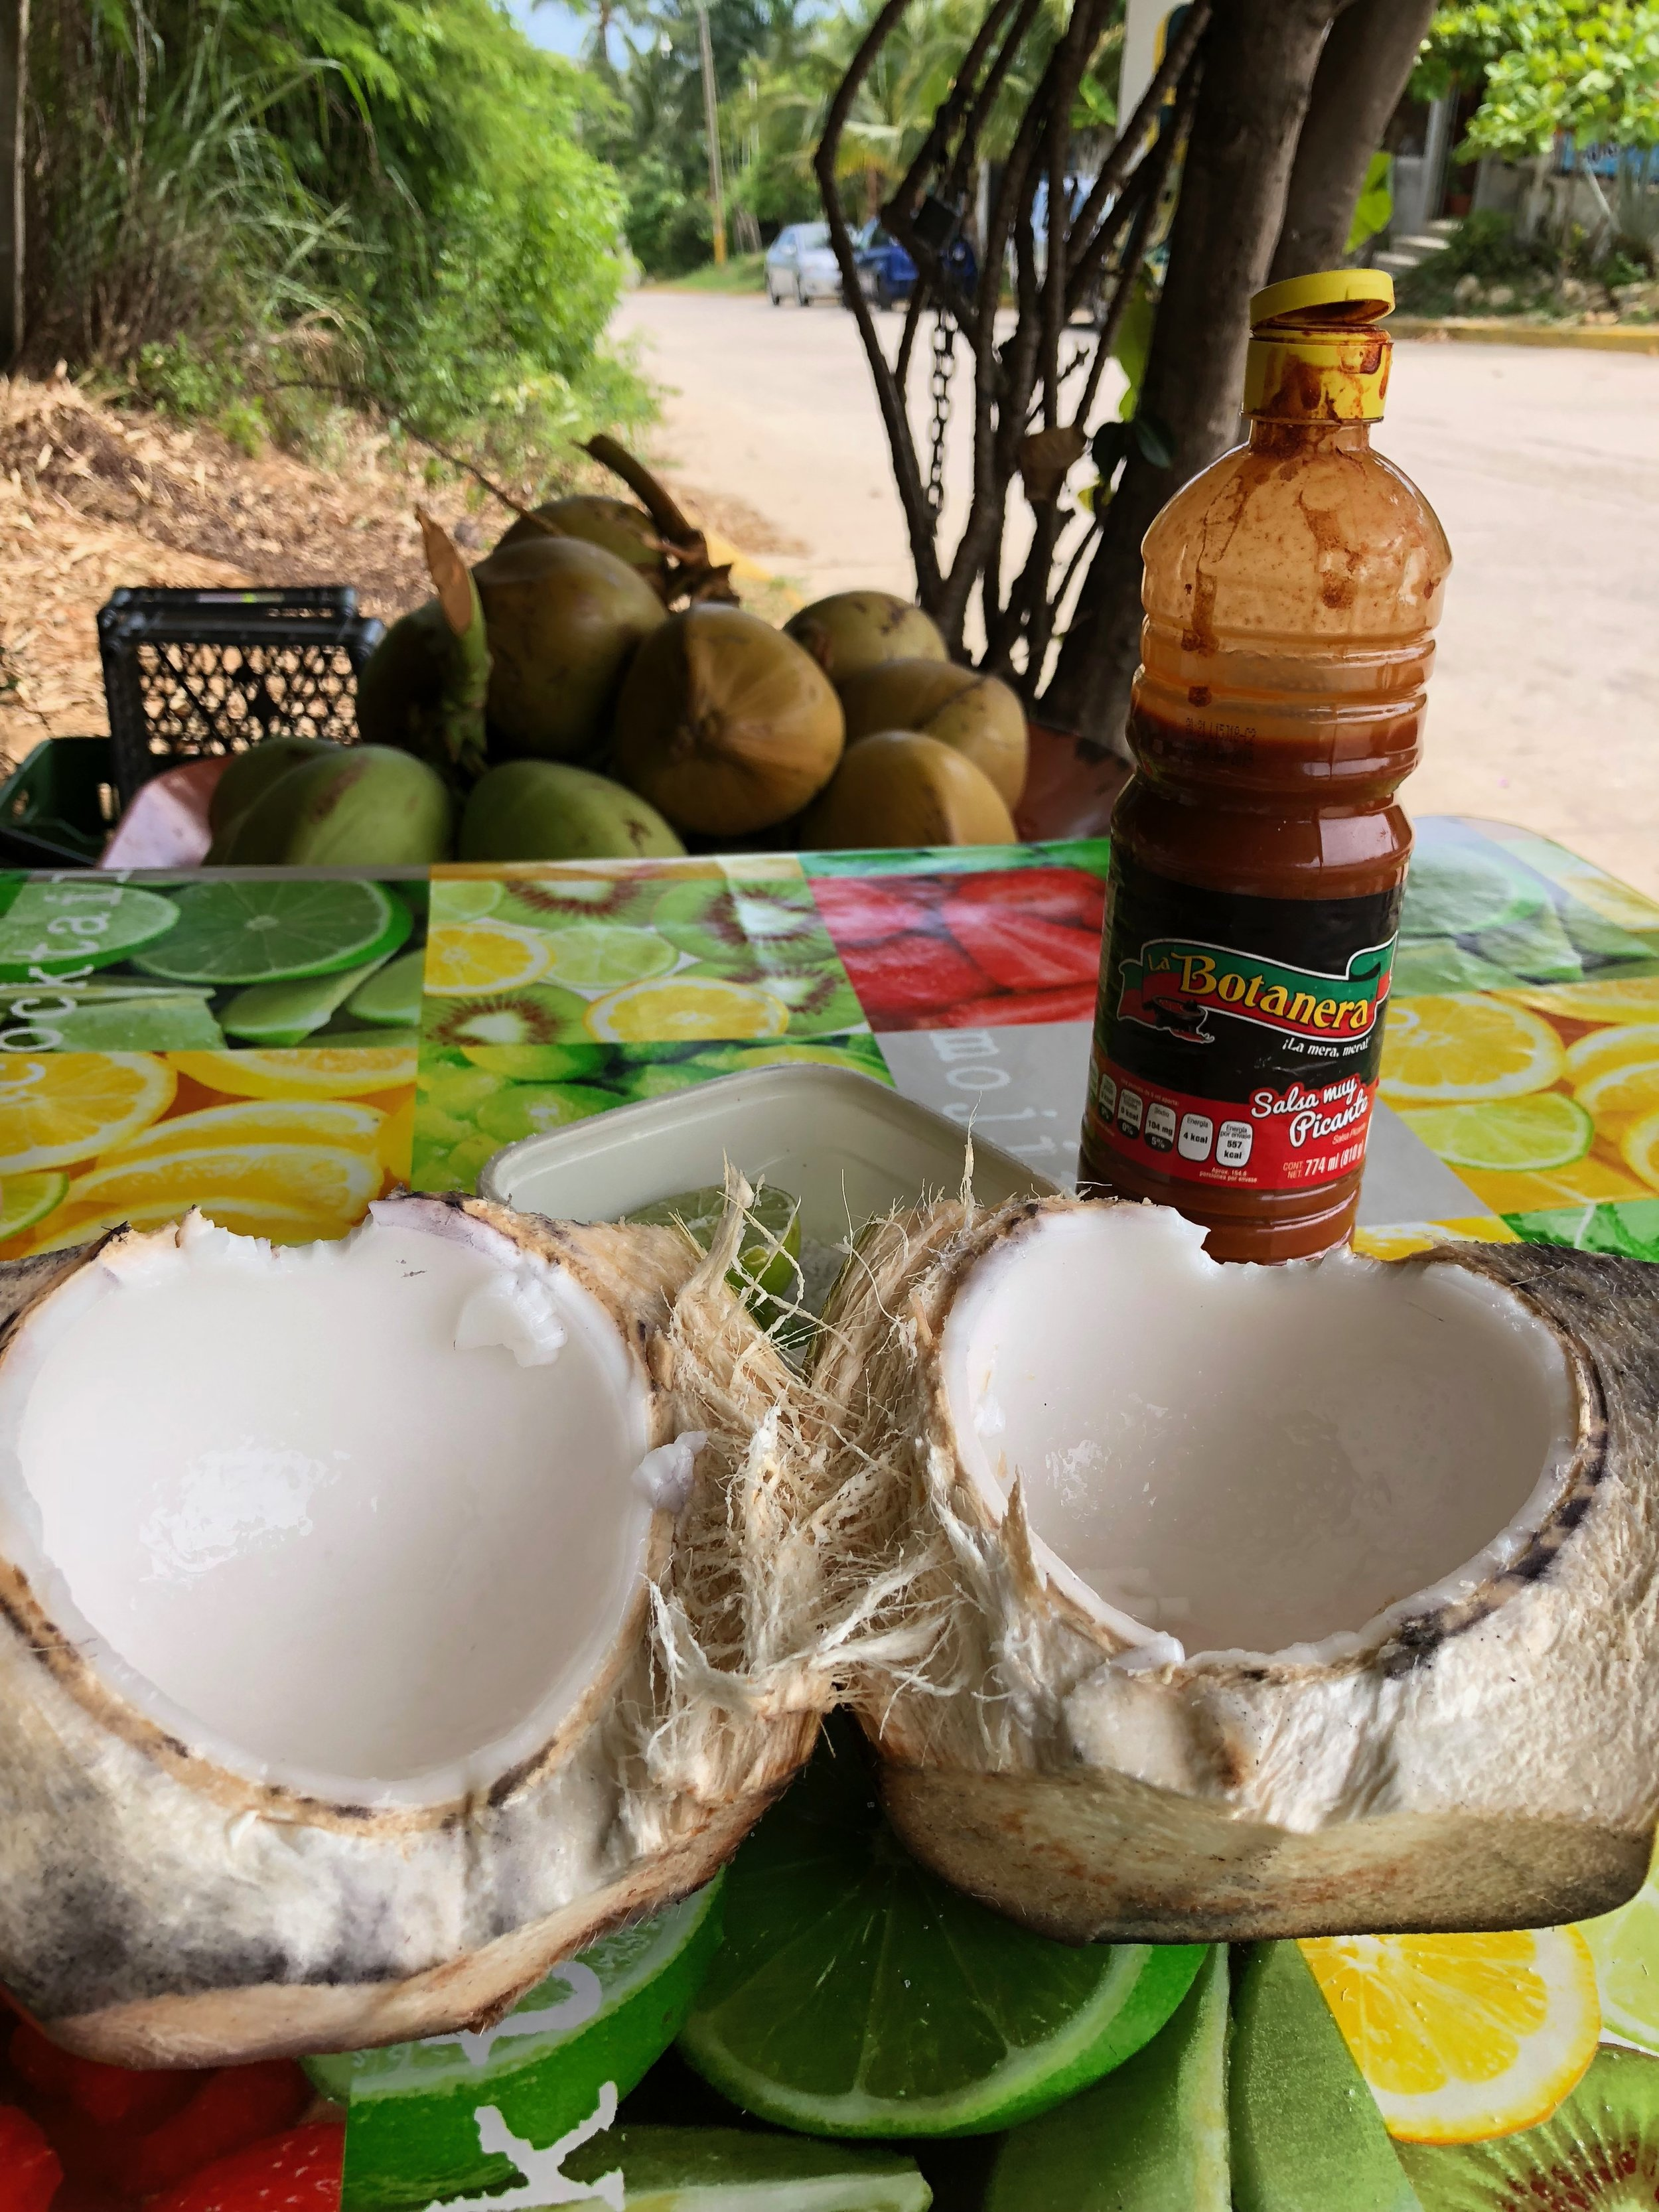 Hot sauce, lime and salt are optional but add an interesting element to the soft coconut meat usually eaten with a spoon.